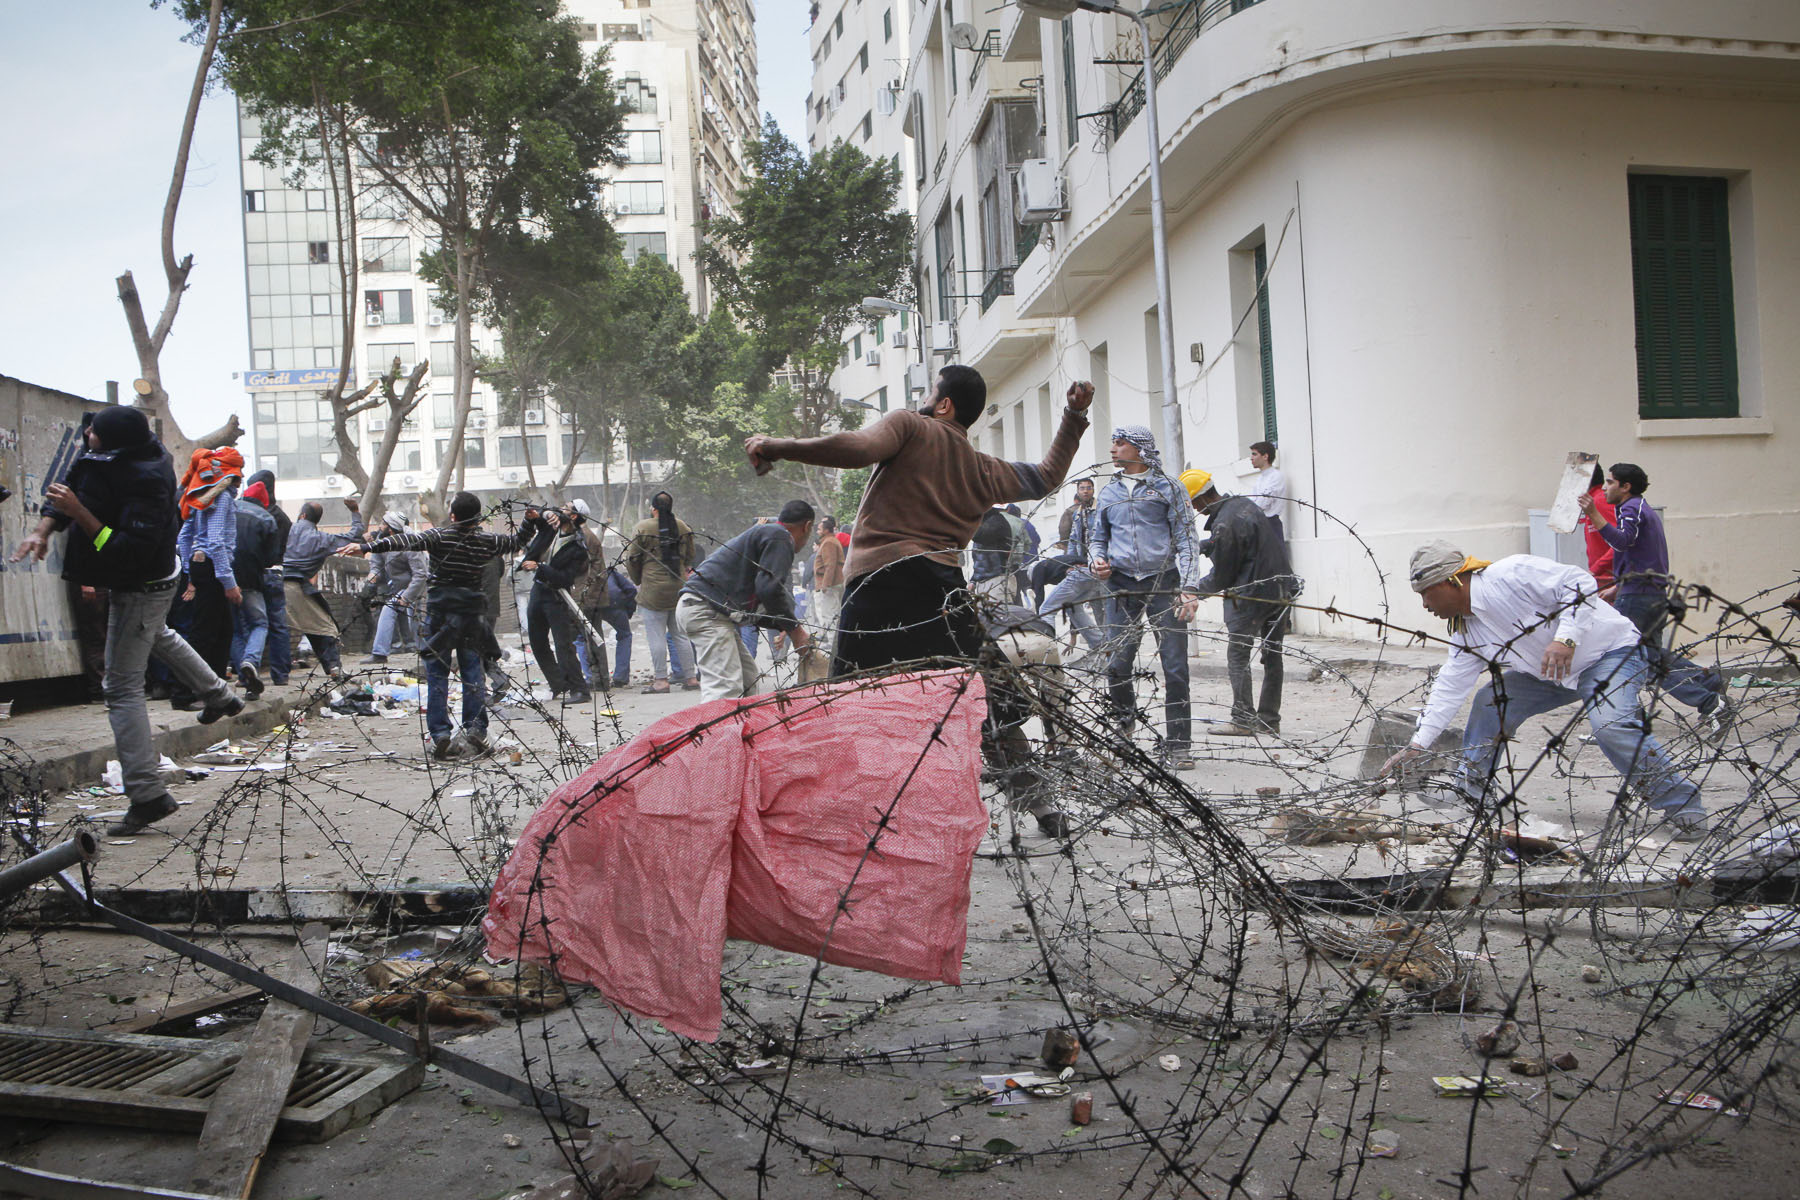 Clash between anti-government demonstrators and President Mubarak's supporters on Tahrir Square on Thursday February 3 2011